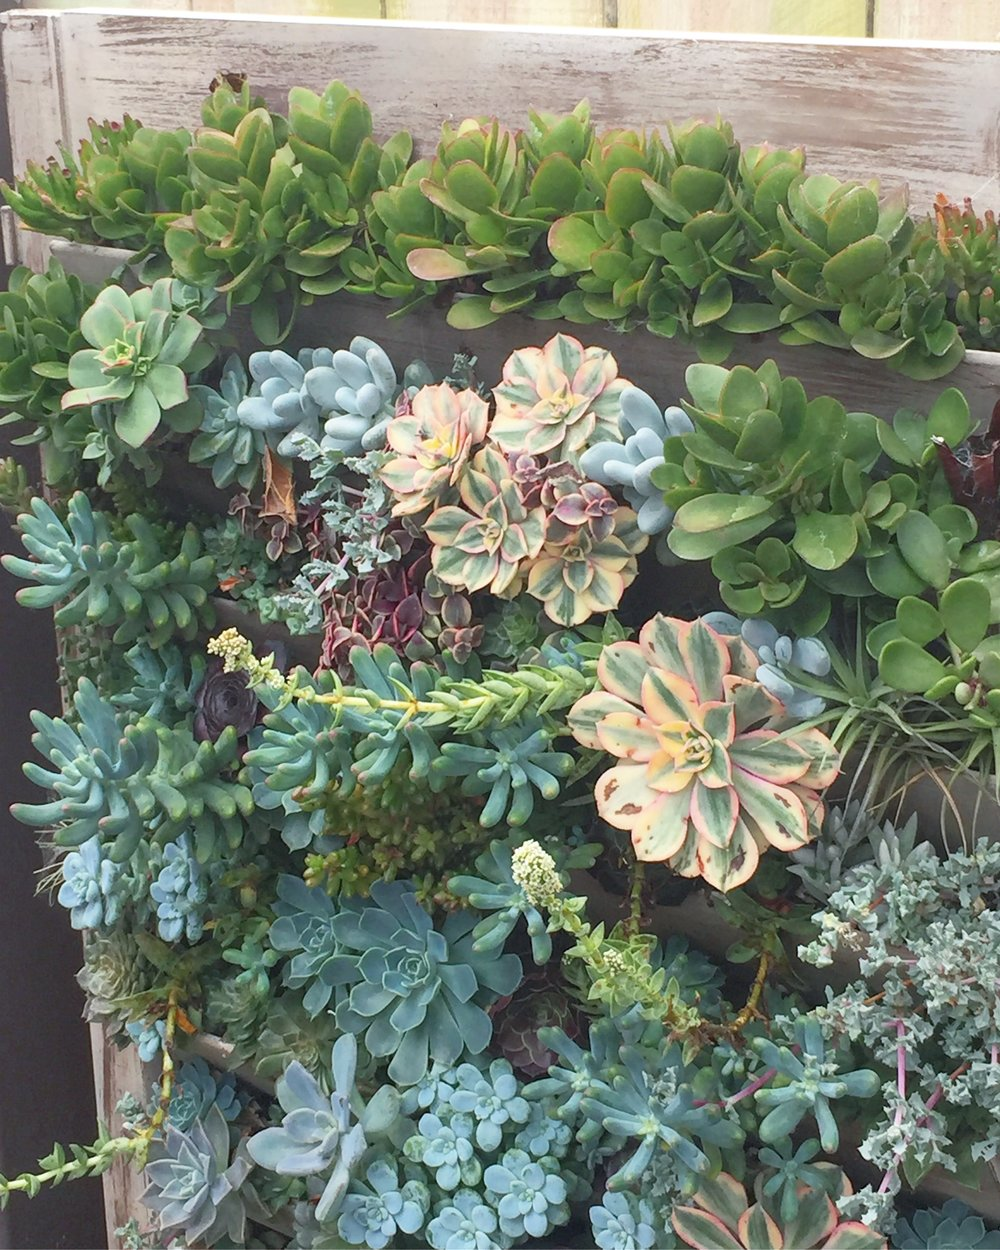 Crassula lining the top row of this beautiful planted shutters seen at Succulent Cafe Carlsbad.